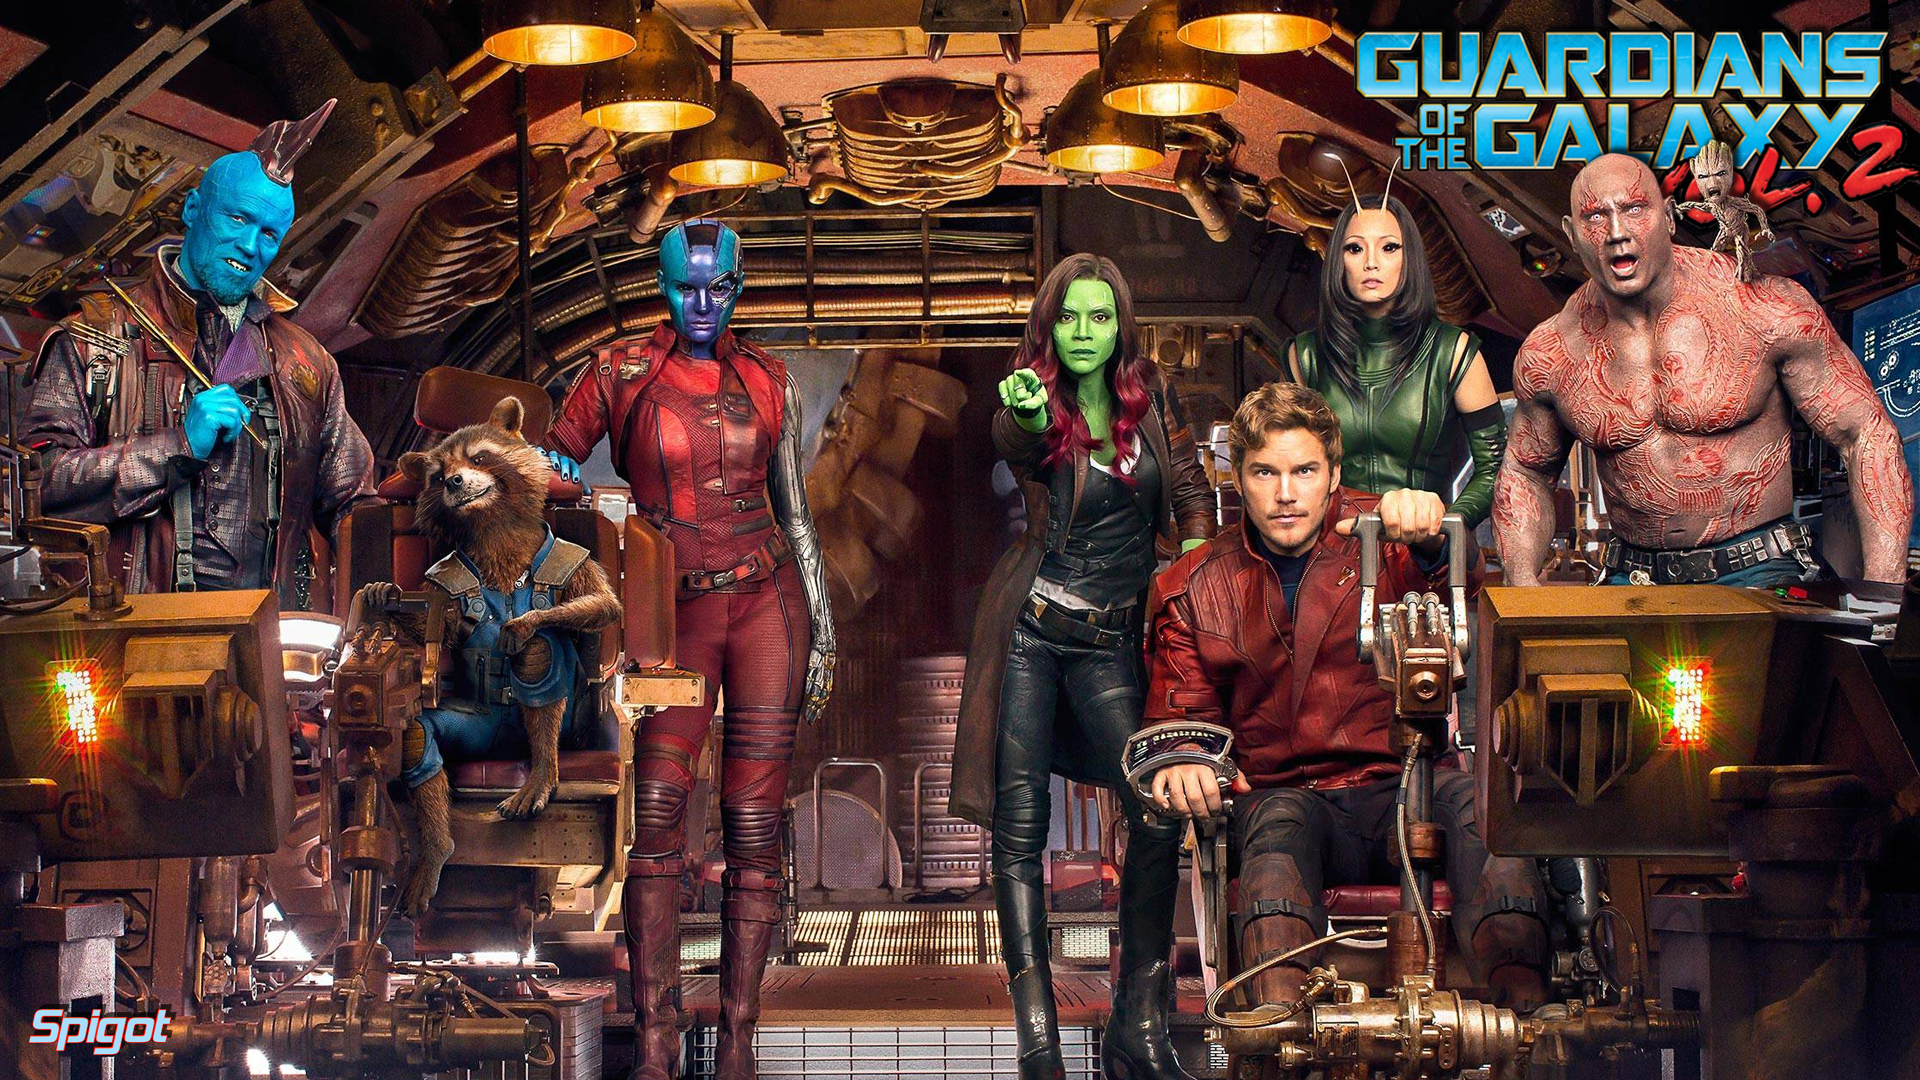 Guardians Of The Galaxy Vol 2 George Spigot S Blog